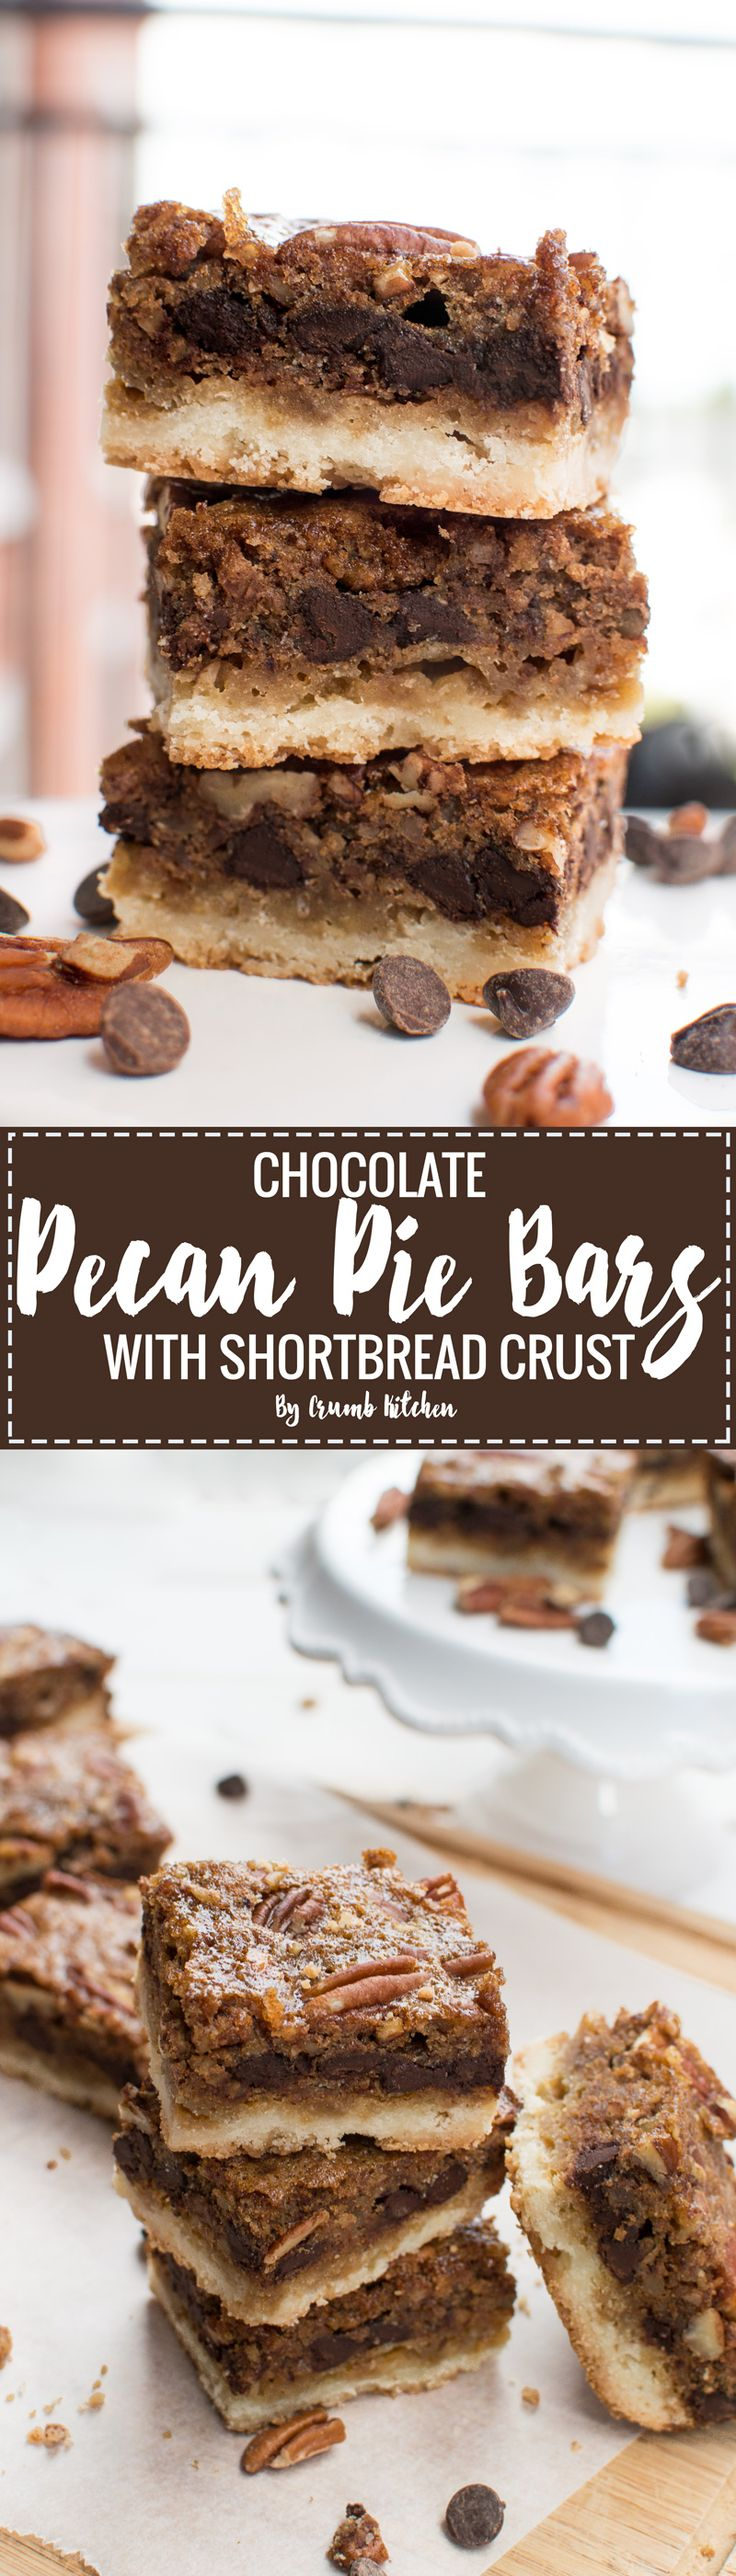 These rich Chocolate Pecan Pie Bars with Shortbread Crust are full of moist corn syrup-free filling, perfect for Thanksgiving dessert.   Crumb Kitchen